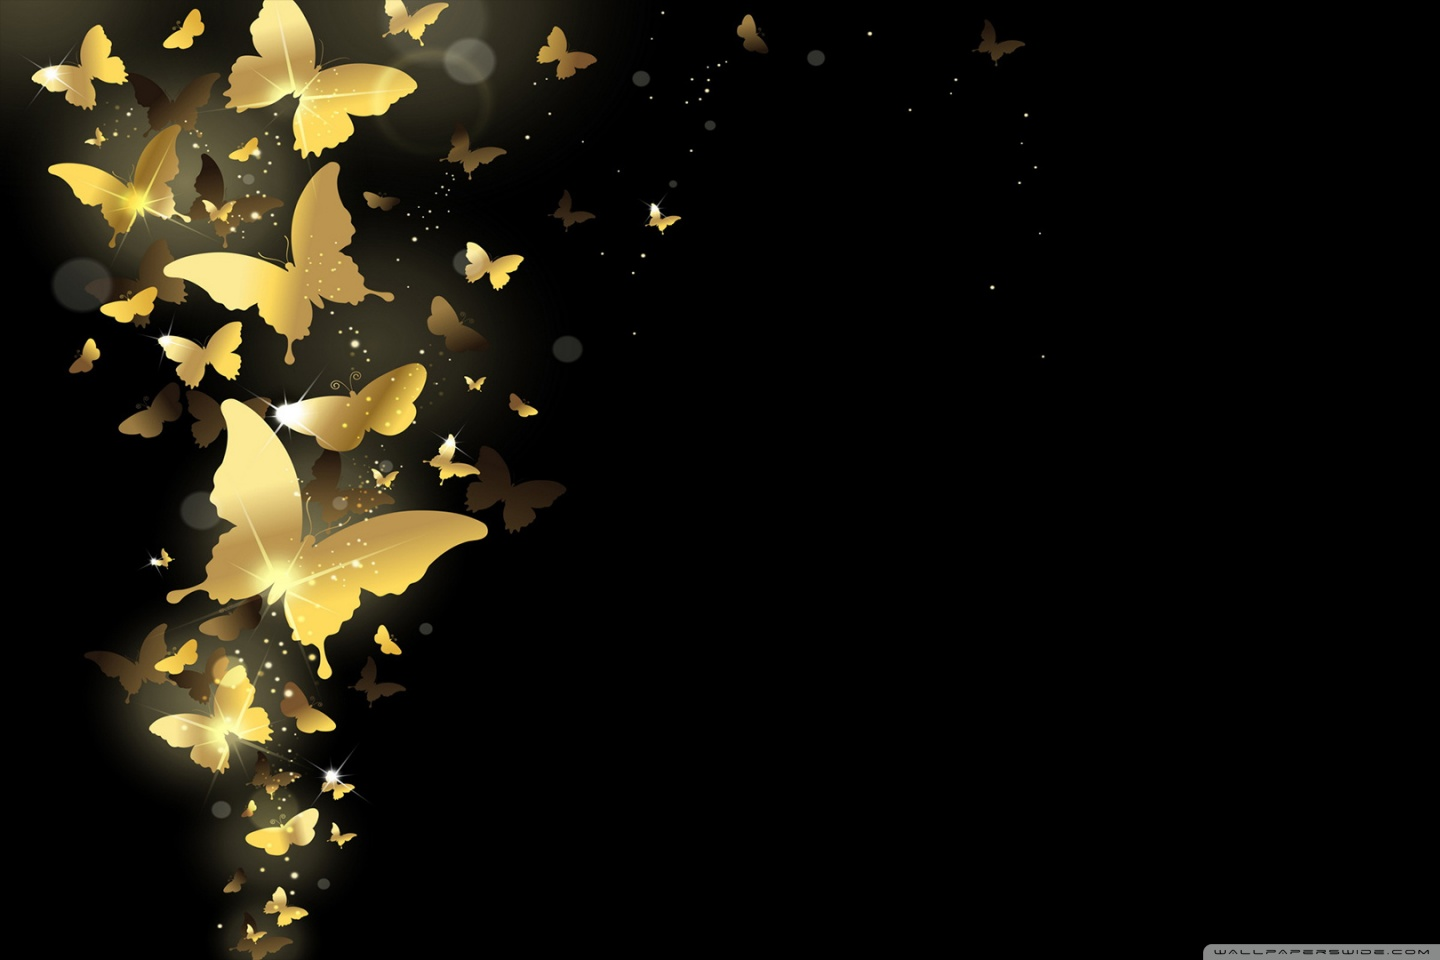 golden_butterflies-wallpaper-1440x960